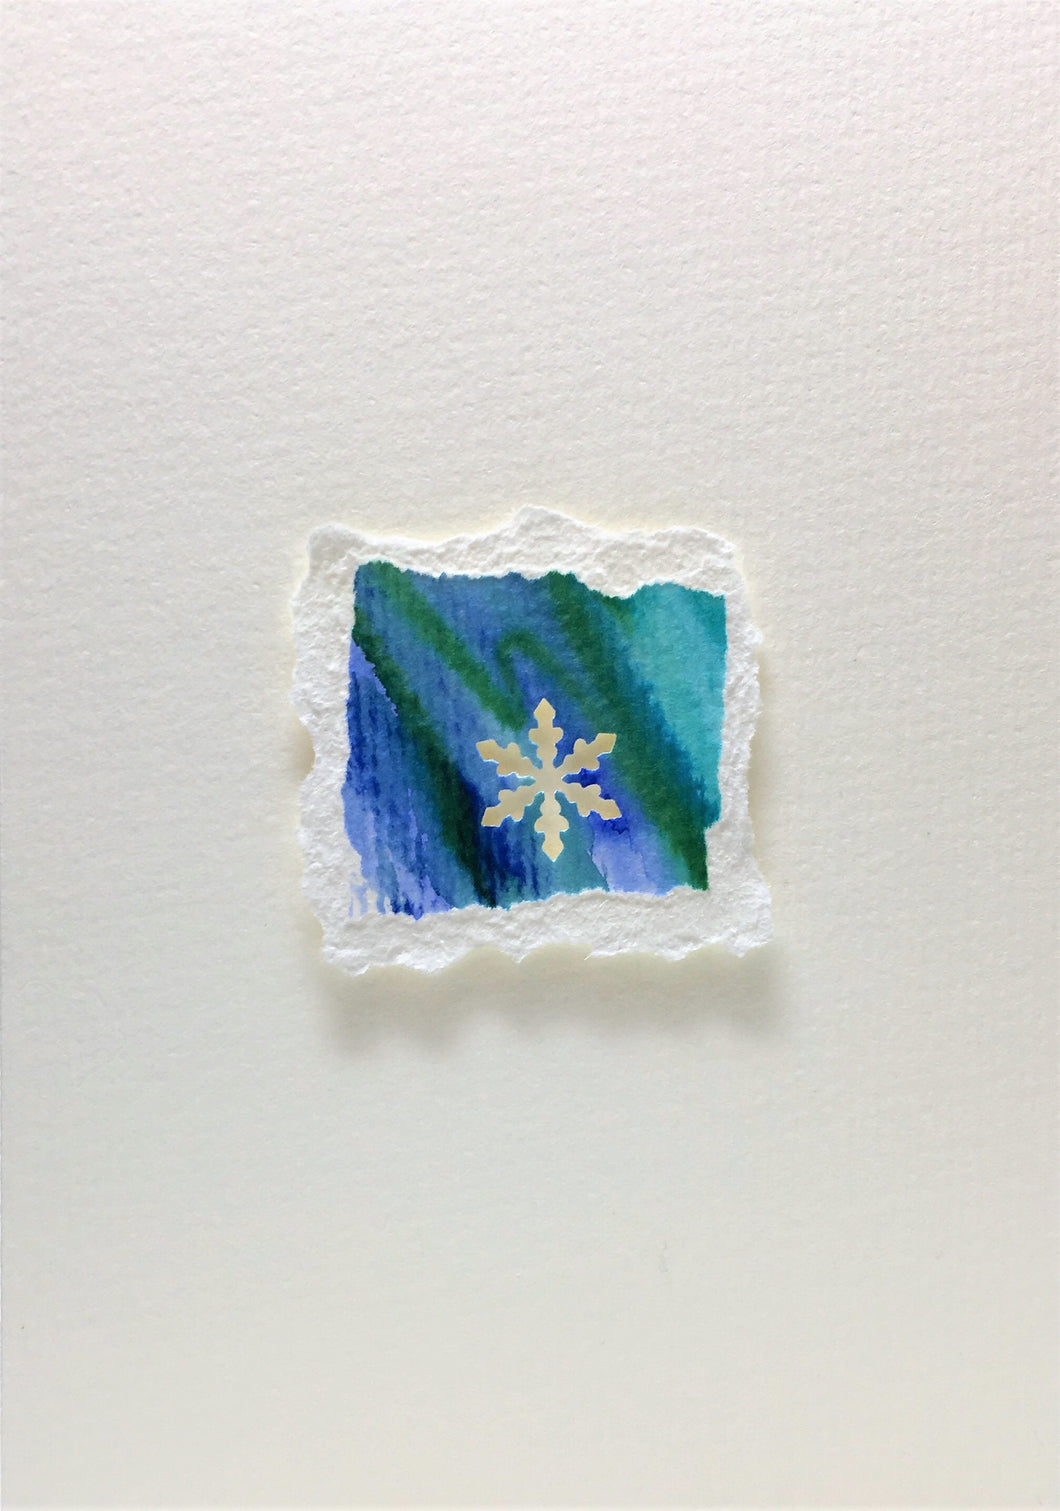 Original Hand Painted Christmas Card - Snowflake Collection - Blue/Green 4 - eDgE dEsiGn London